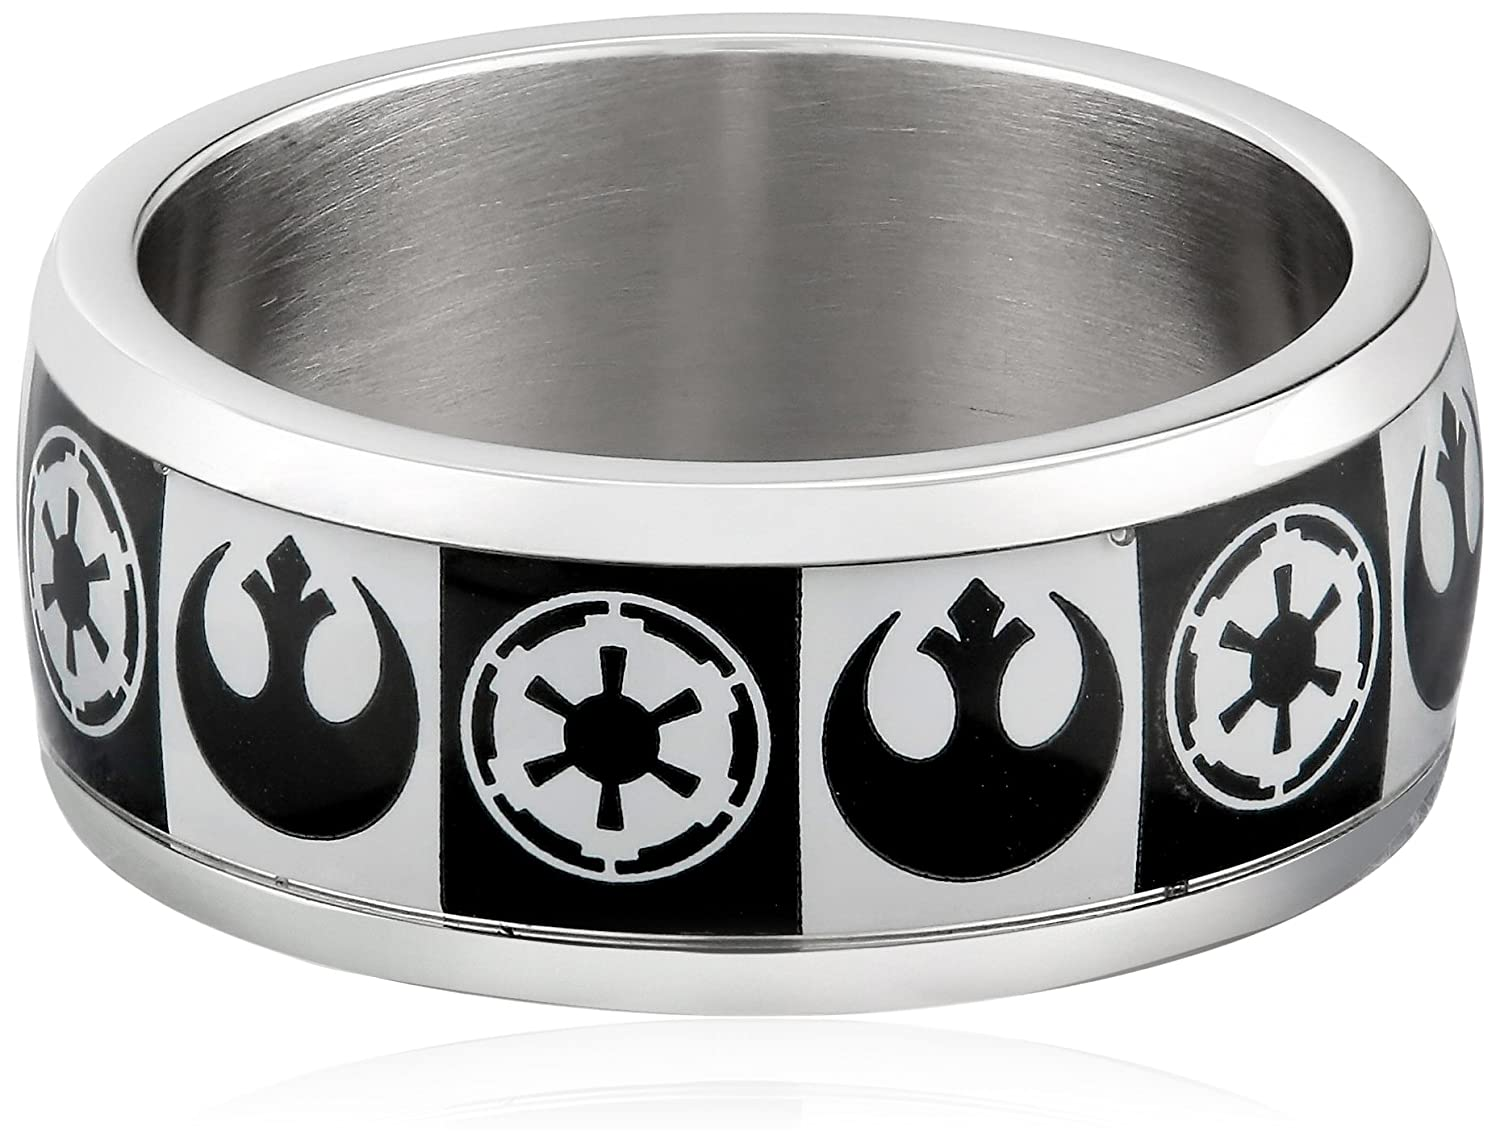 Star Wars Mens Star Wars Ring Rebel Alliance Stainless Steel